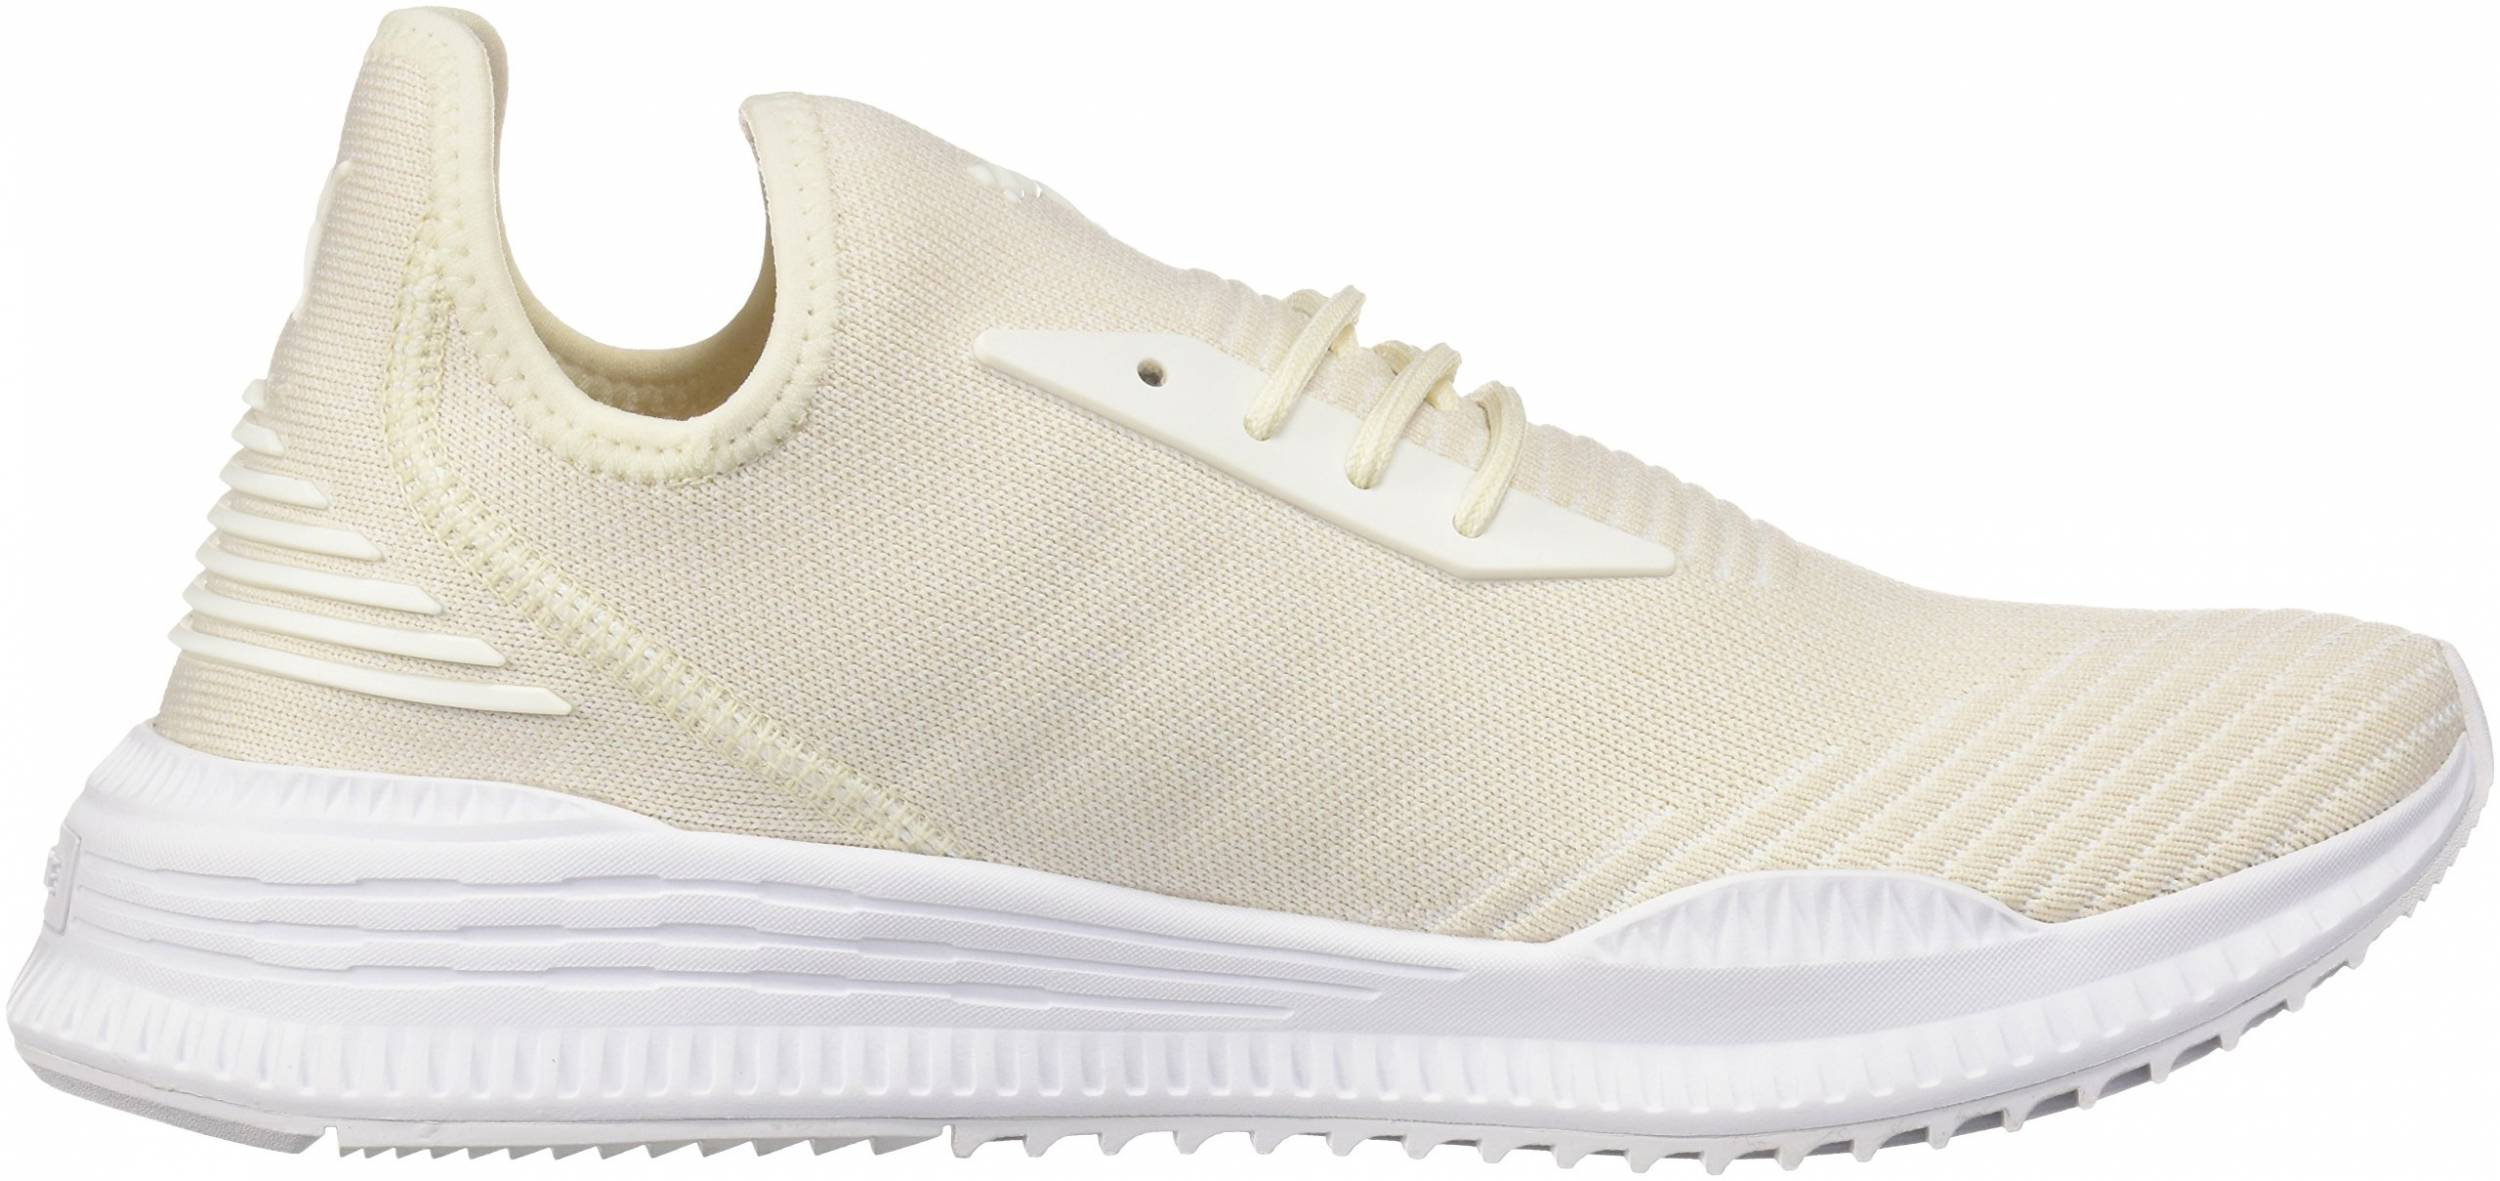 Only $27 + Review of Puma Avid evoKNIT